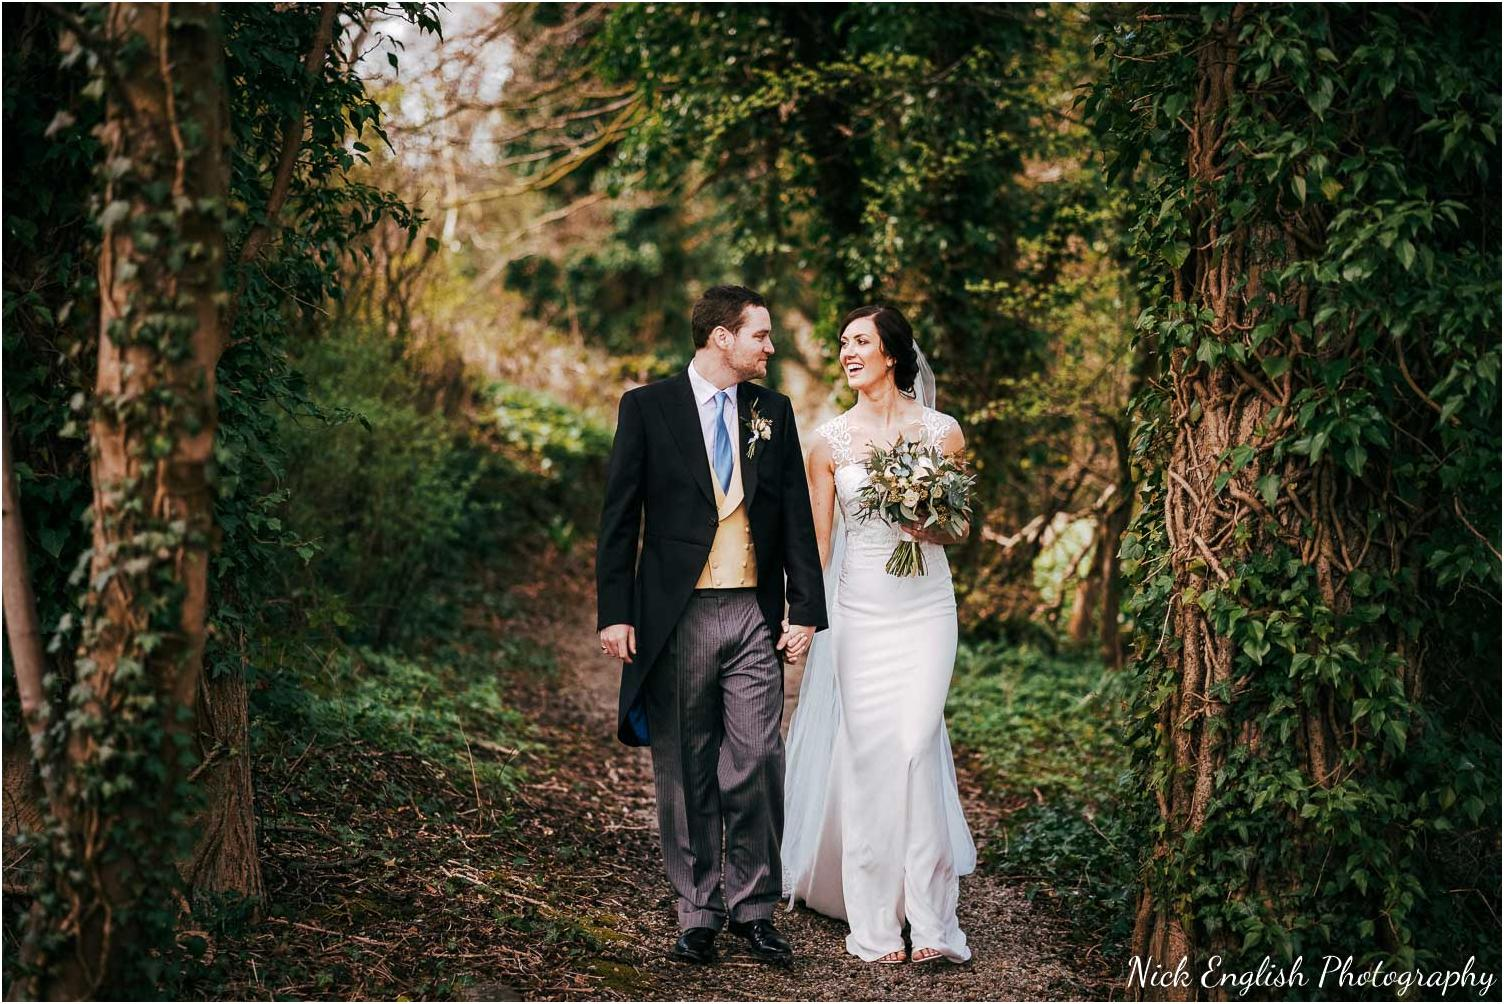 Mitton_Hall_Wedding_Photographer-86.jpg